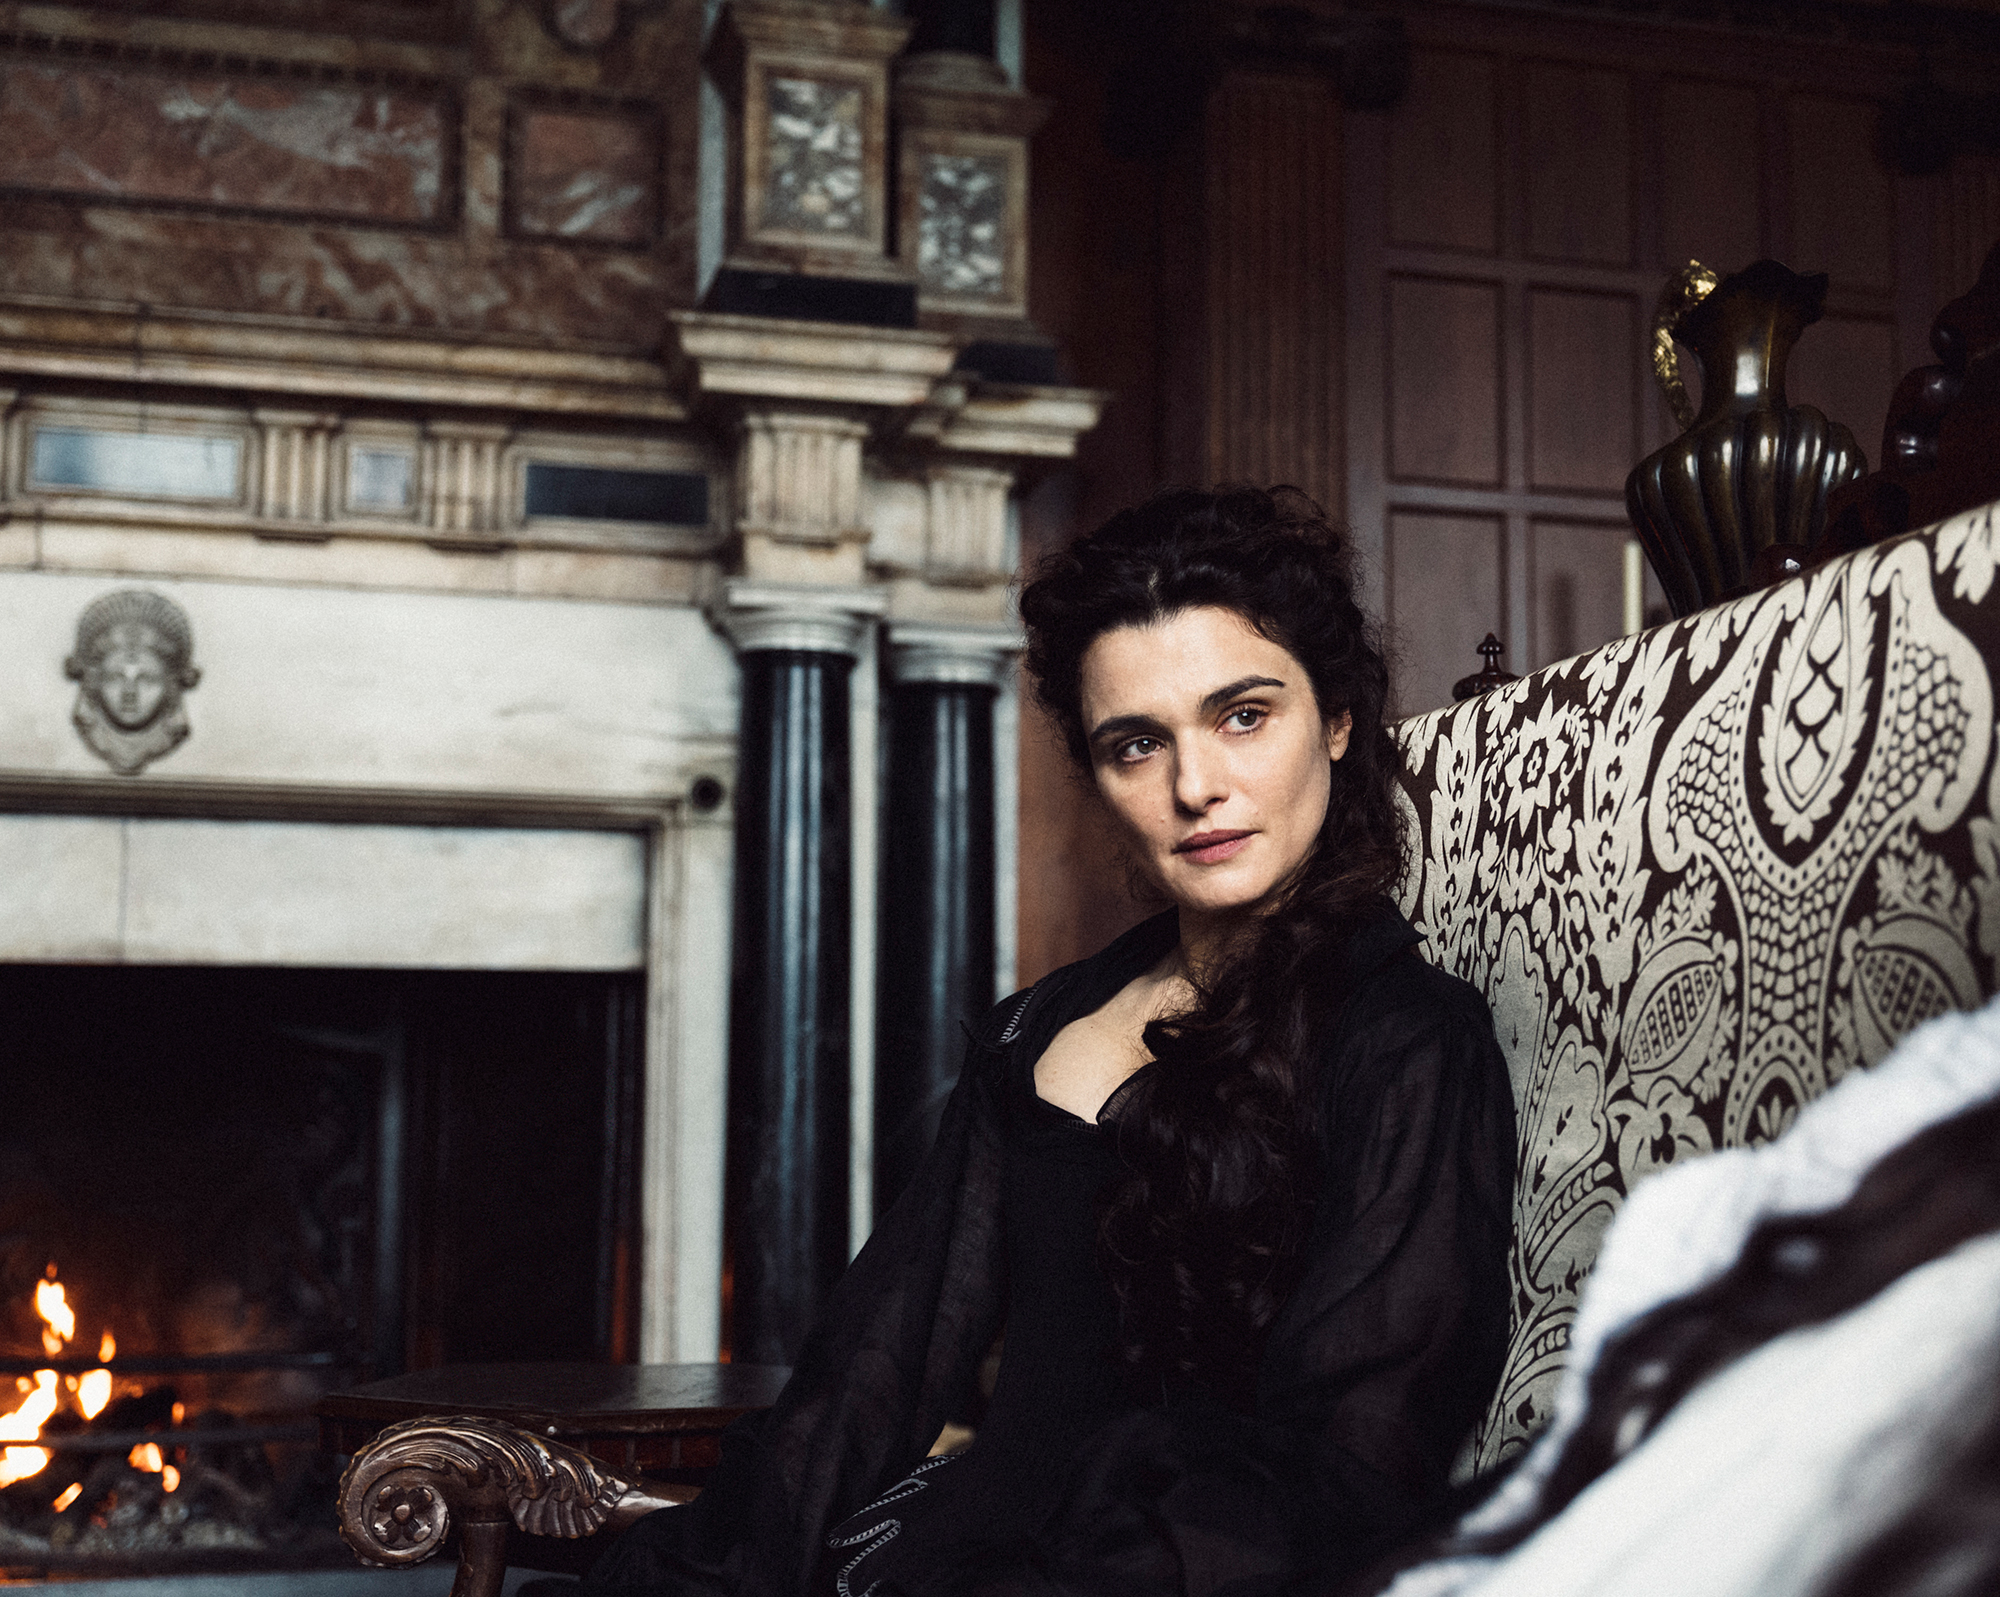 """SAGS-Rachel-Weisz,-""""The-Favourite"""" - Amy Adams, Vice Emma Stone, The Favourite Rachel Weisz, The Favourite Emily Blunt, A Quiet Place Margot Robbie, Mary Queen of Scots"""